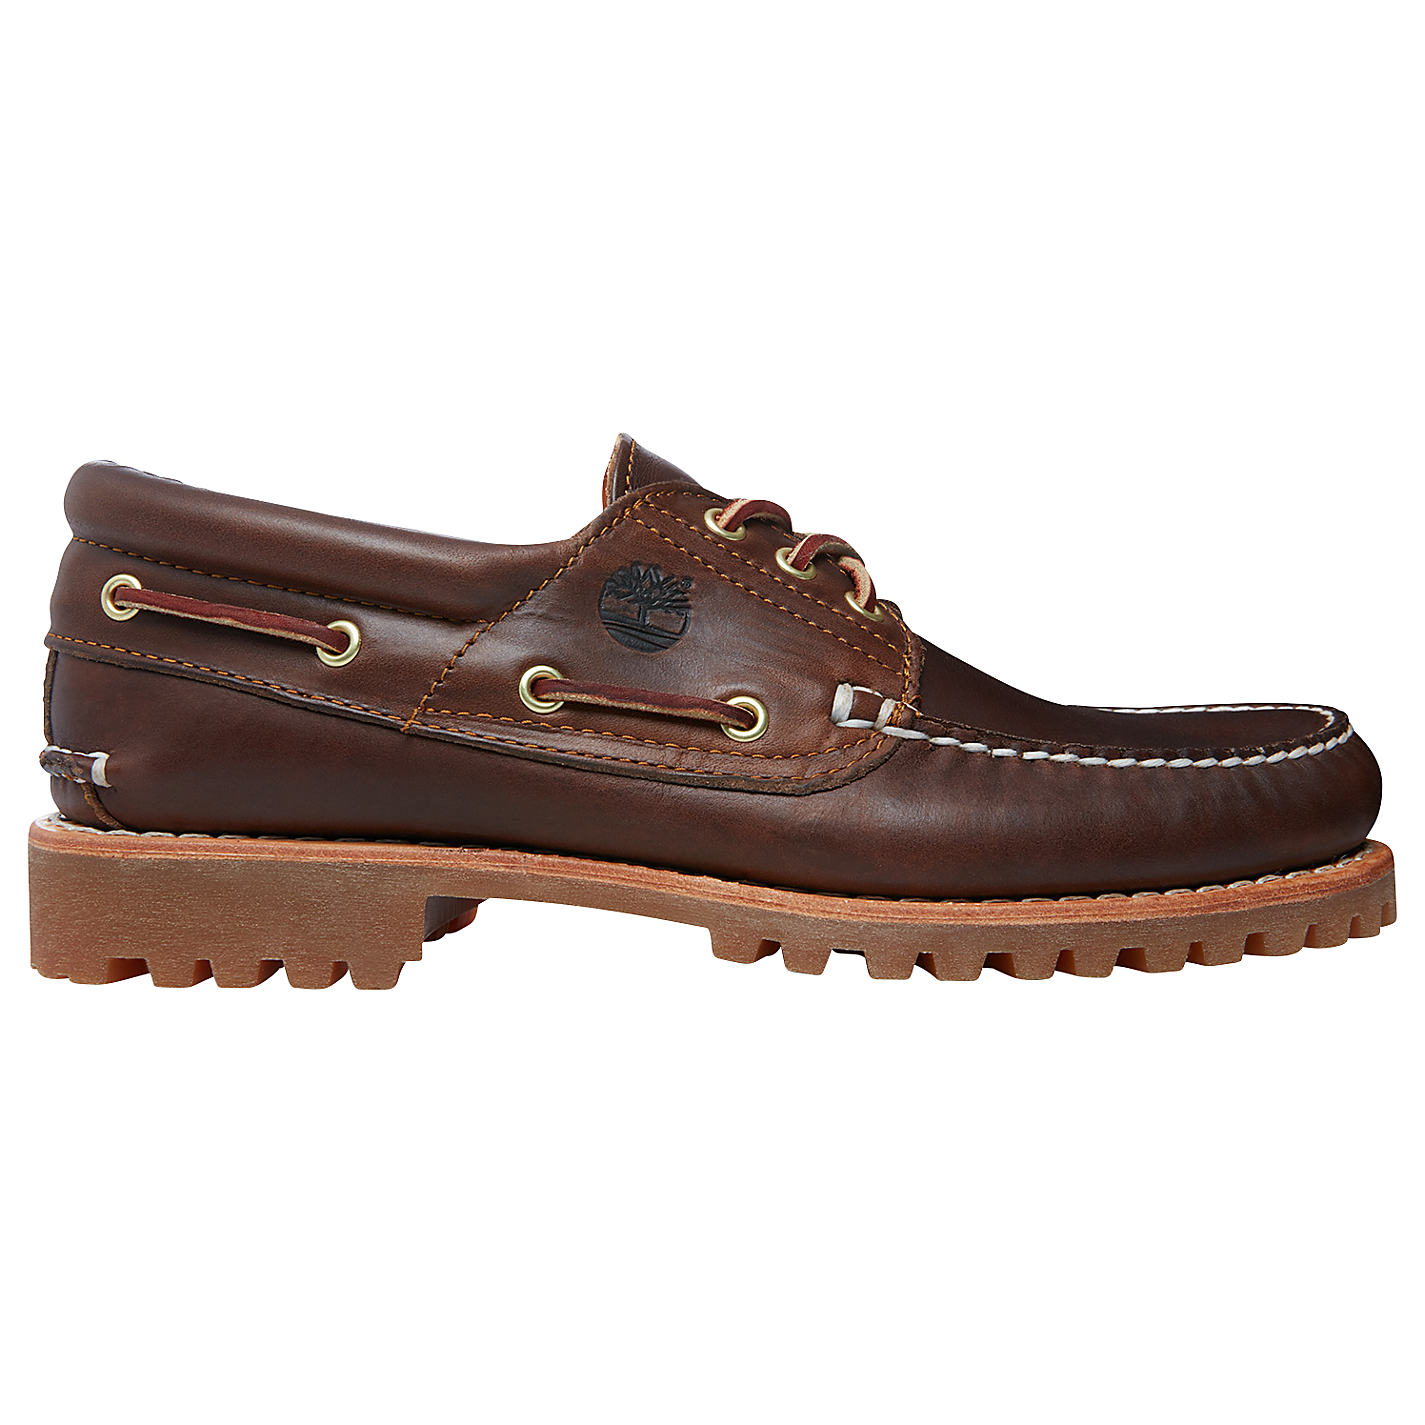 Timberland Deck Shoes Size